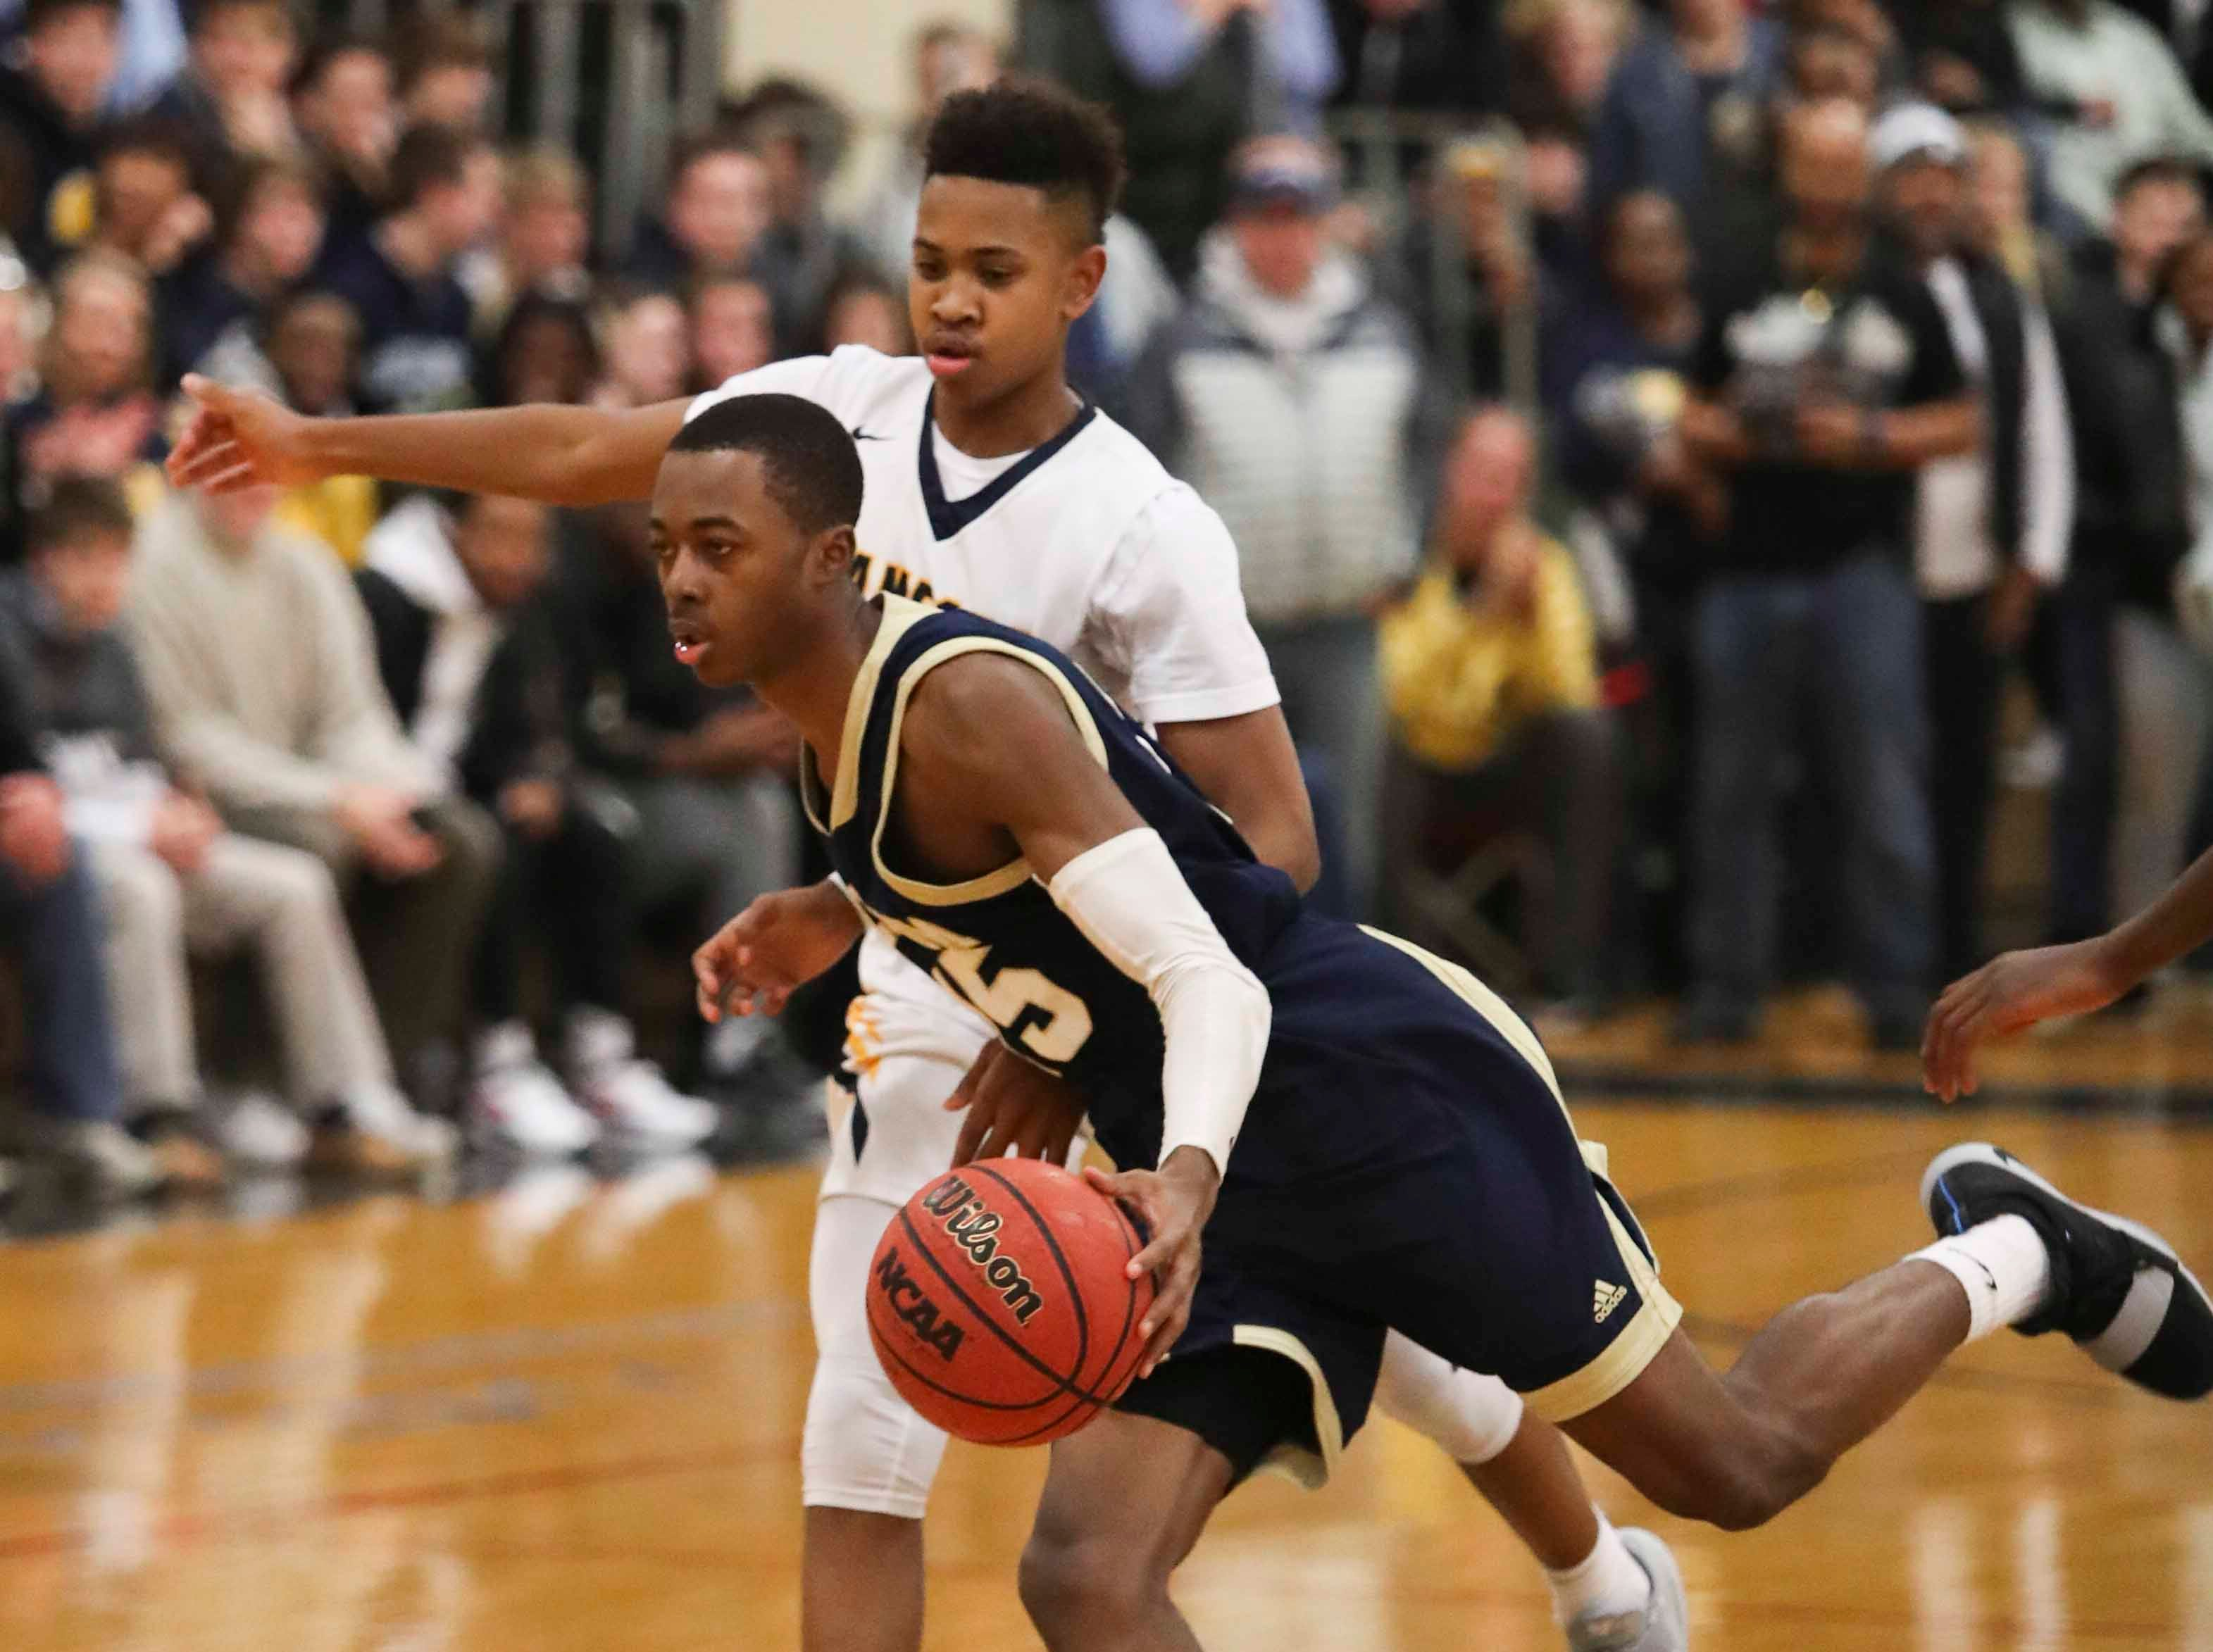 Salesianum's Rasheed Caulk (front) moves against Corey Perkins during the Warriors' 65-47 win at home Friday.